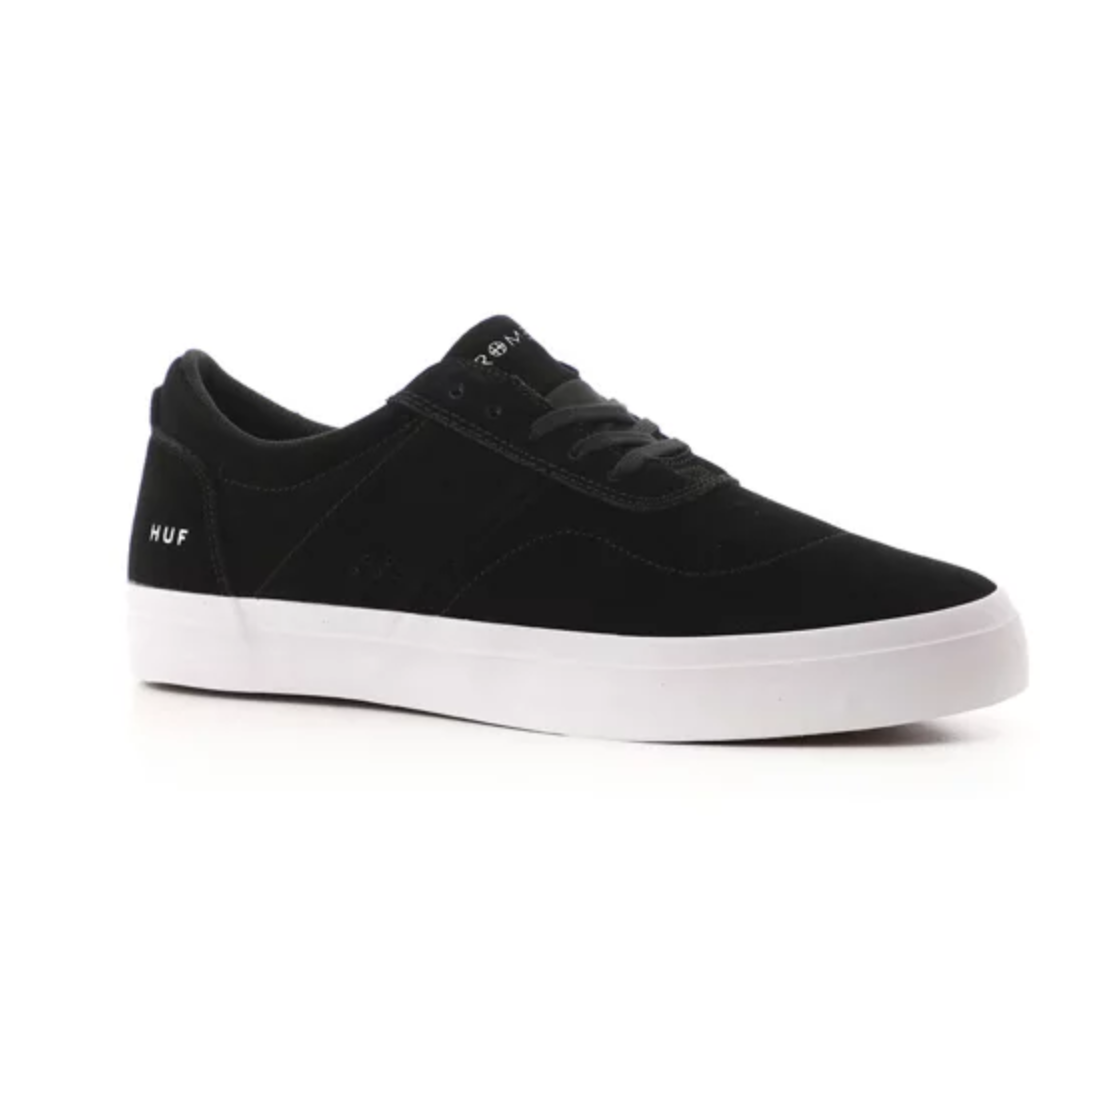 HUF CROMER 2 SHOE - BLACK